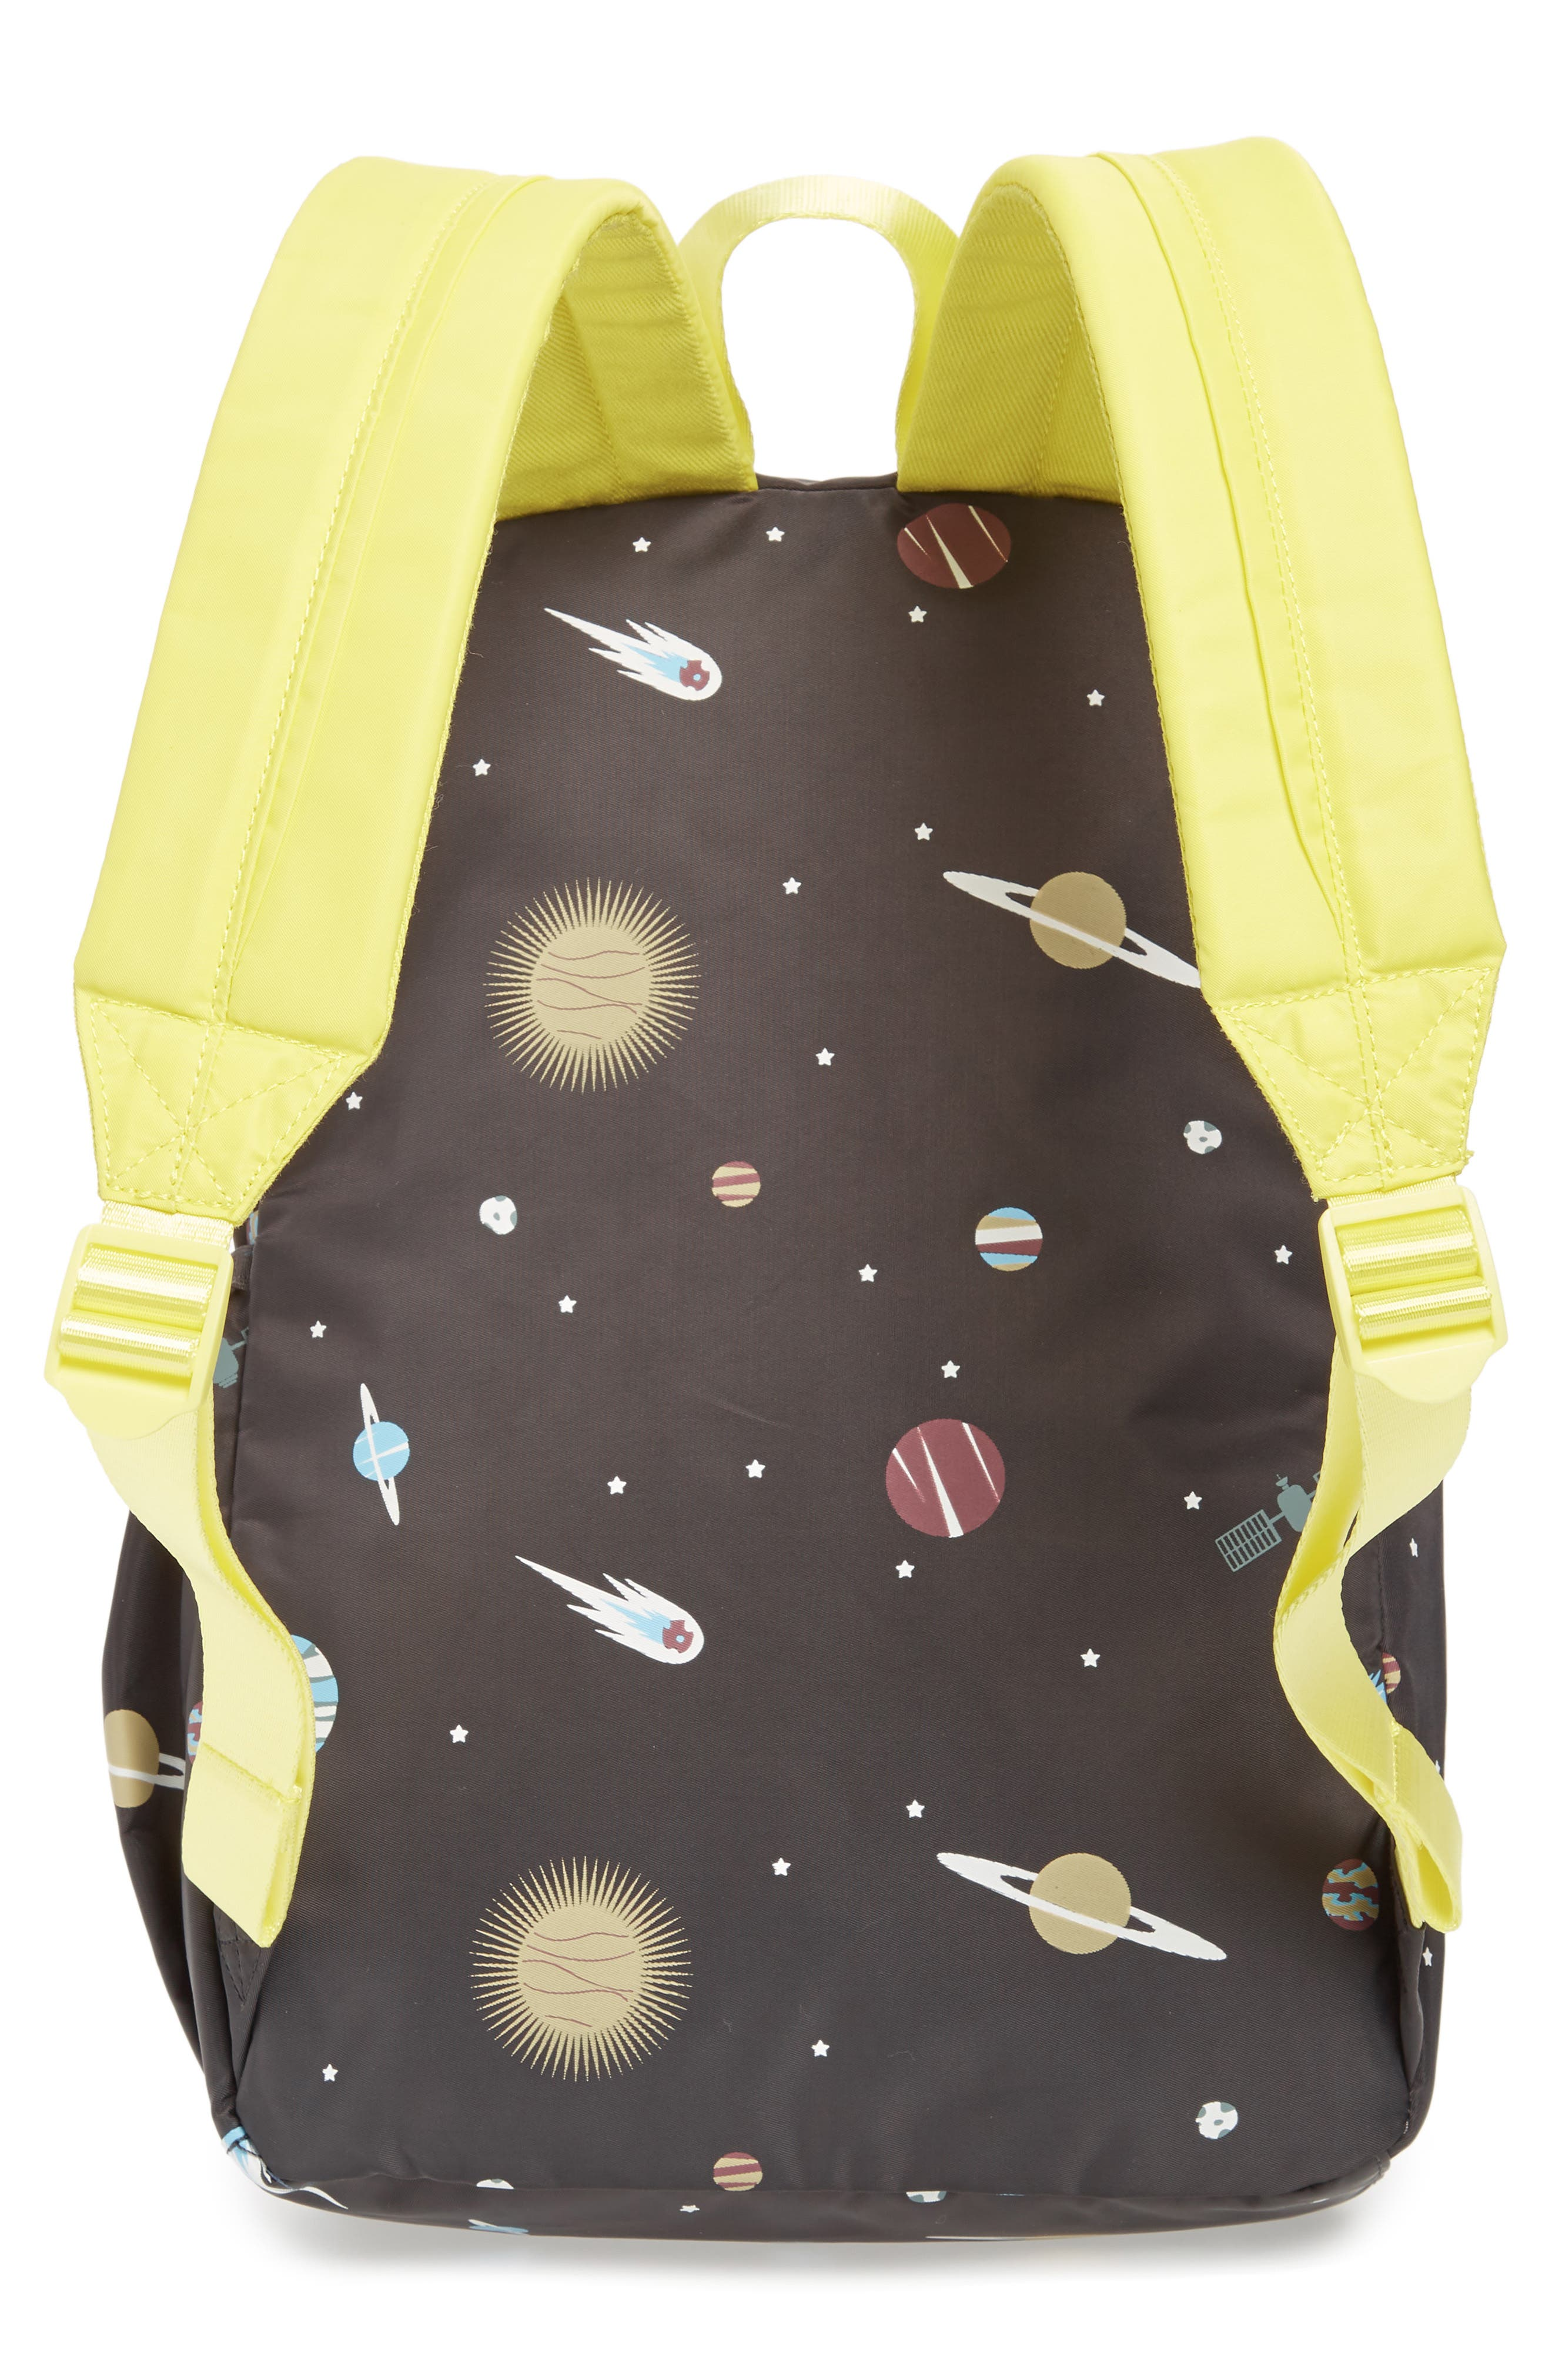 Glow in the Dark Space Print Backpack,                             Alternate thumbnail 2, color,